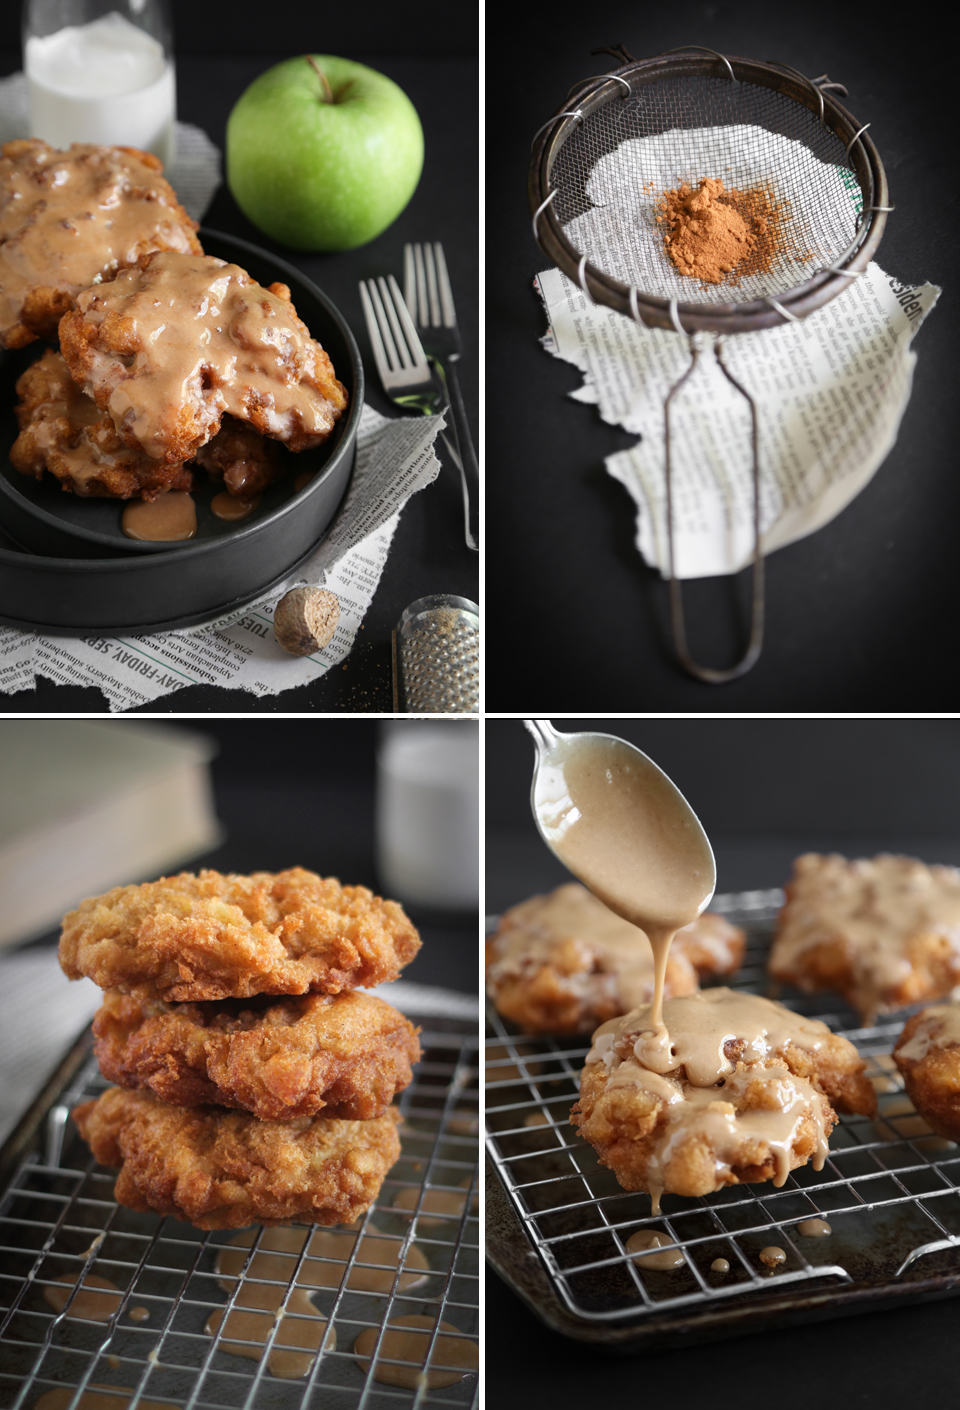 from http://www.sprinklebakes.com/2015/09/homemade-ugly-apple-fritters.html